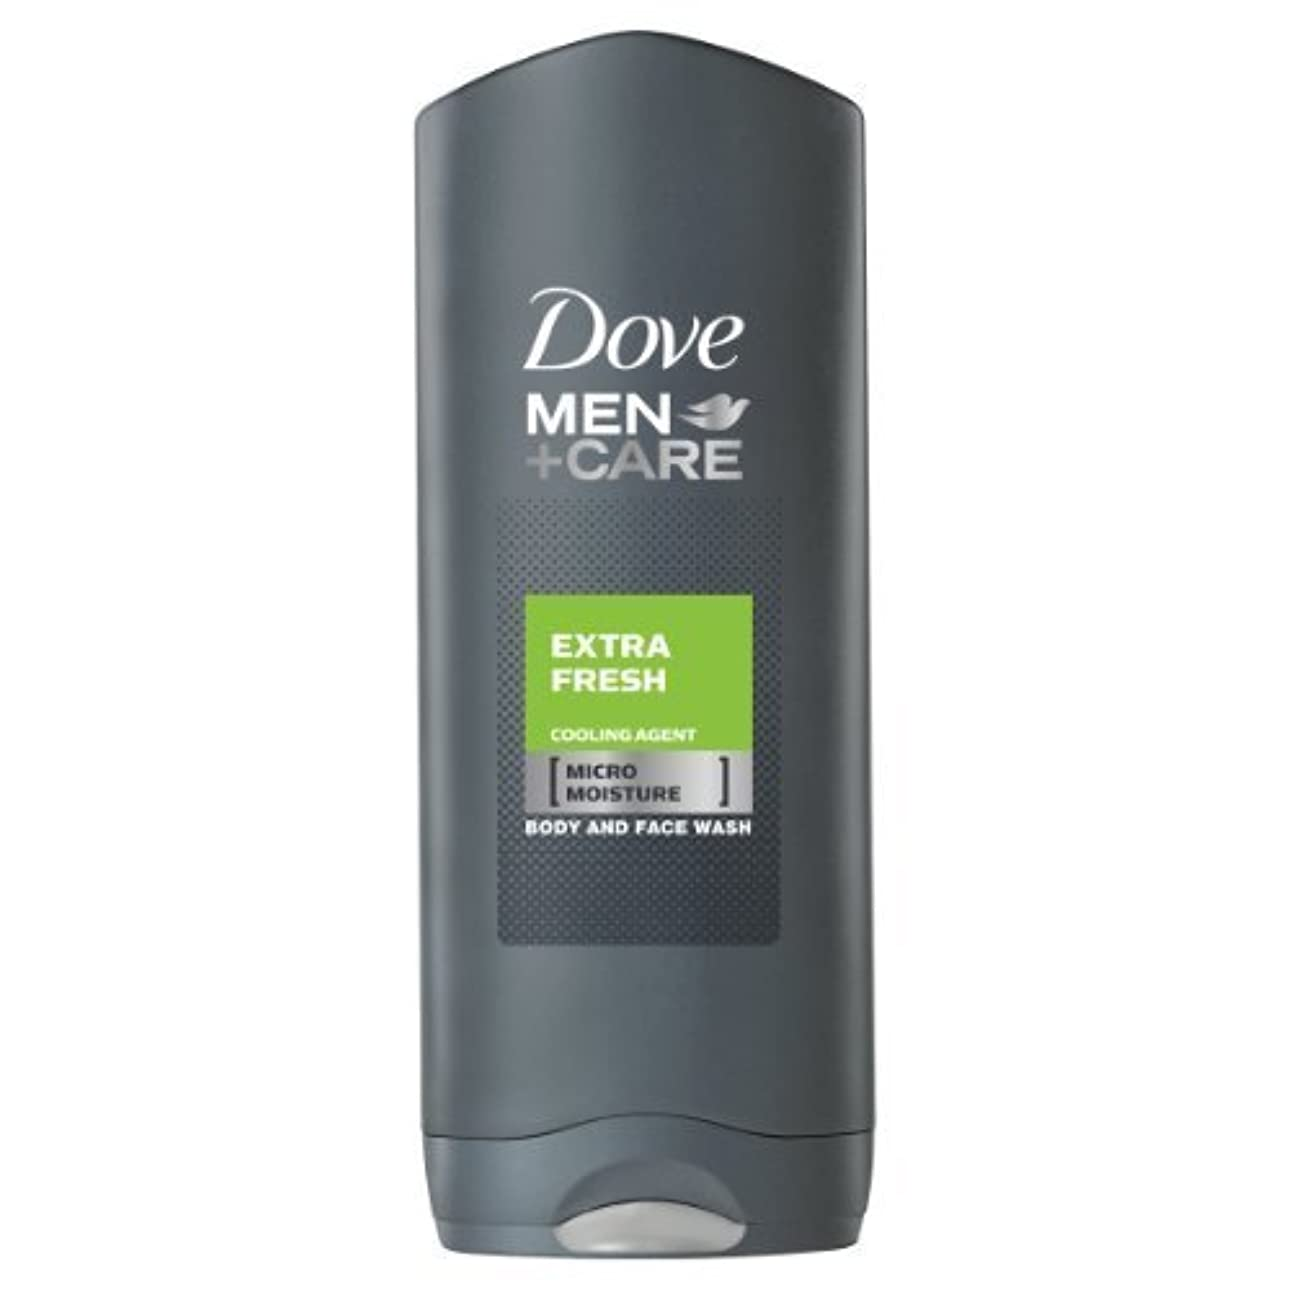 ルネッサンス踏み台エラーDove for Men Extra Fresh Body and Face Wash 250 ml by Dove [並行輸入品]